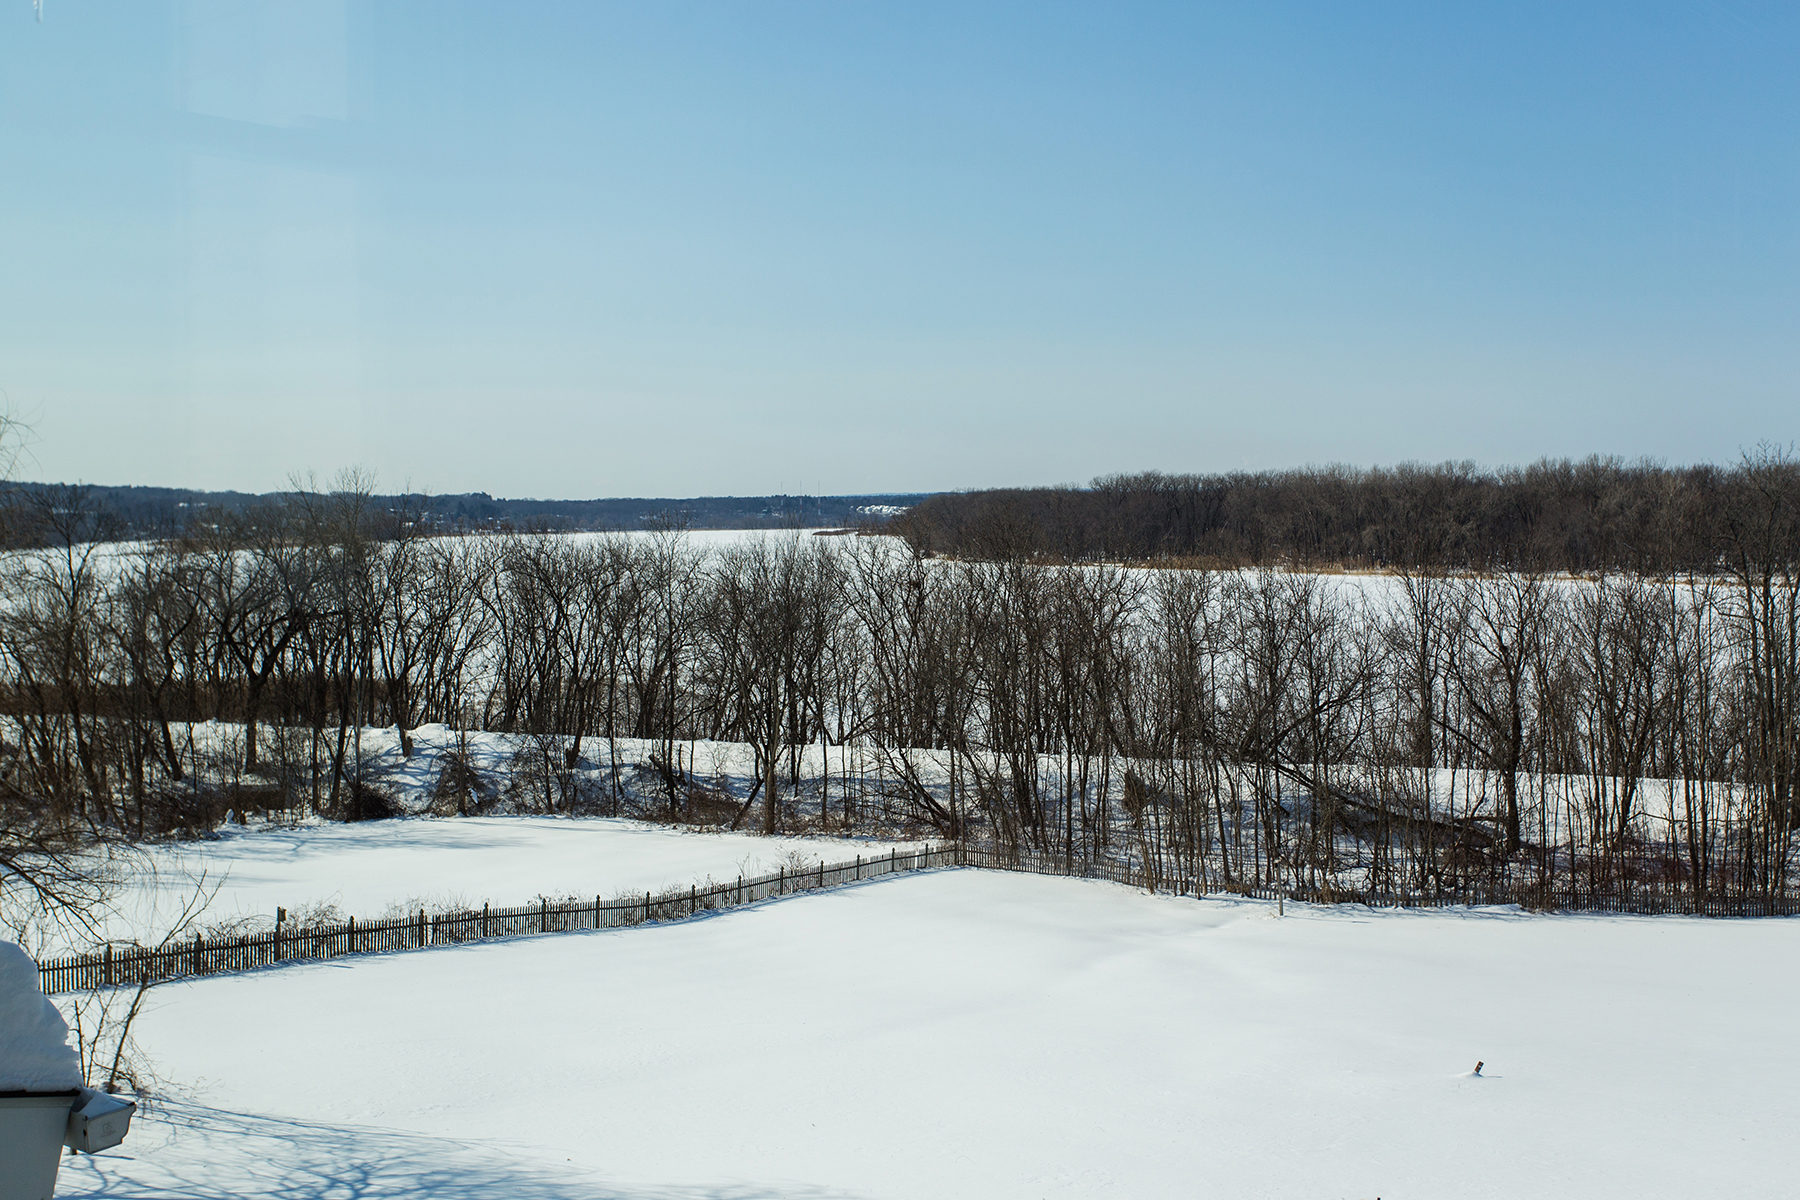 Land for Sale at Building Lot Overlooking the Mohawk River 4237 River Rd Latham, 12110 United States